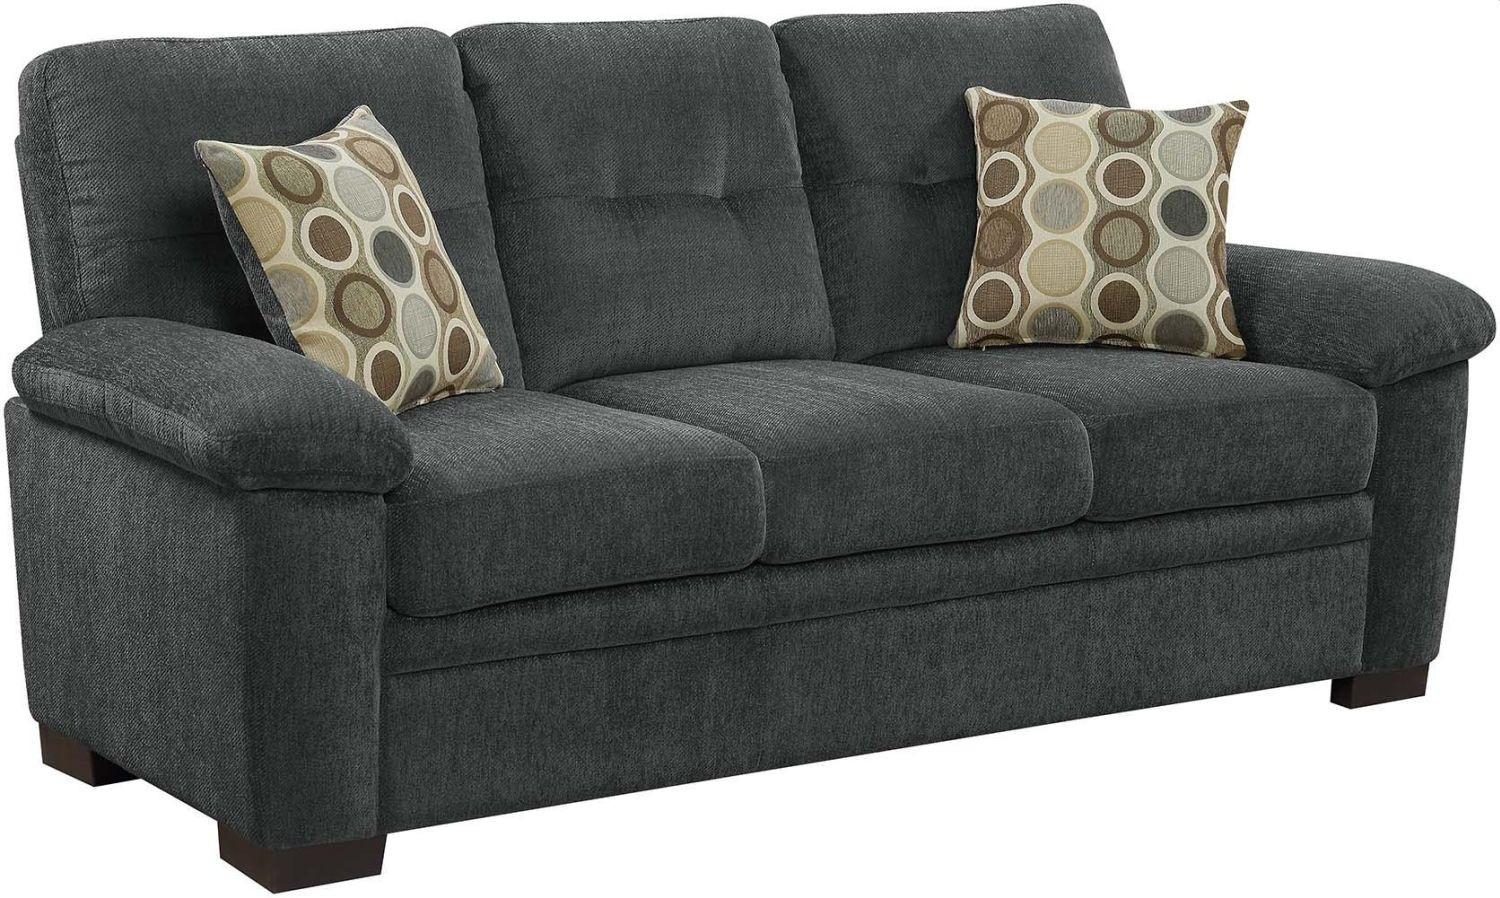 Casual Sofa in Charcoal Chenille Fabric